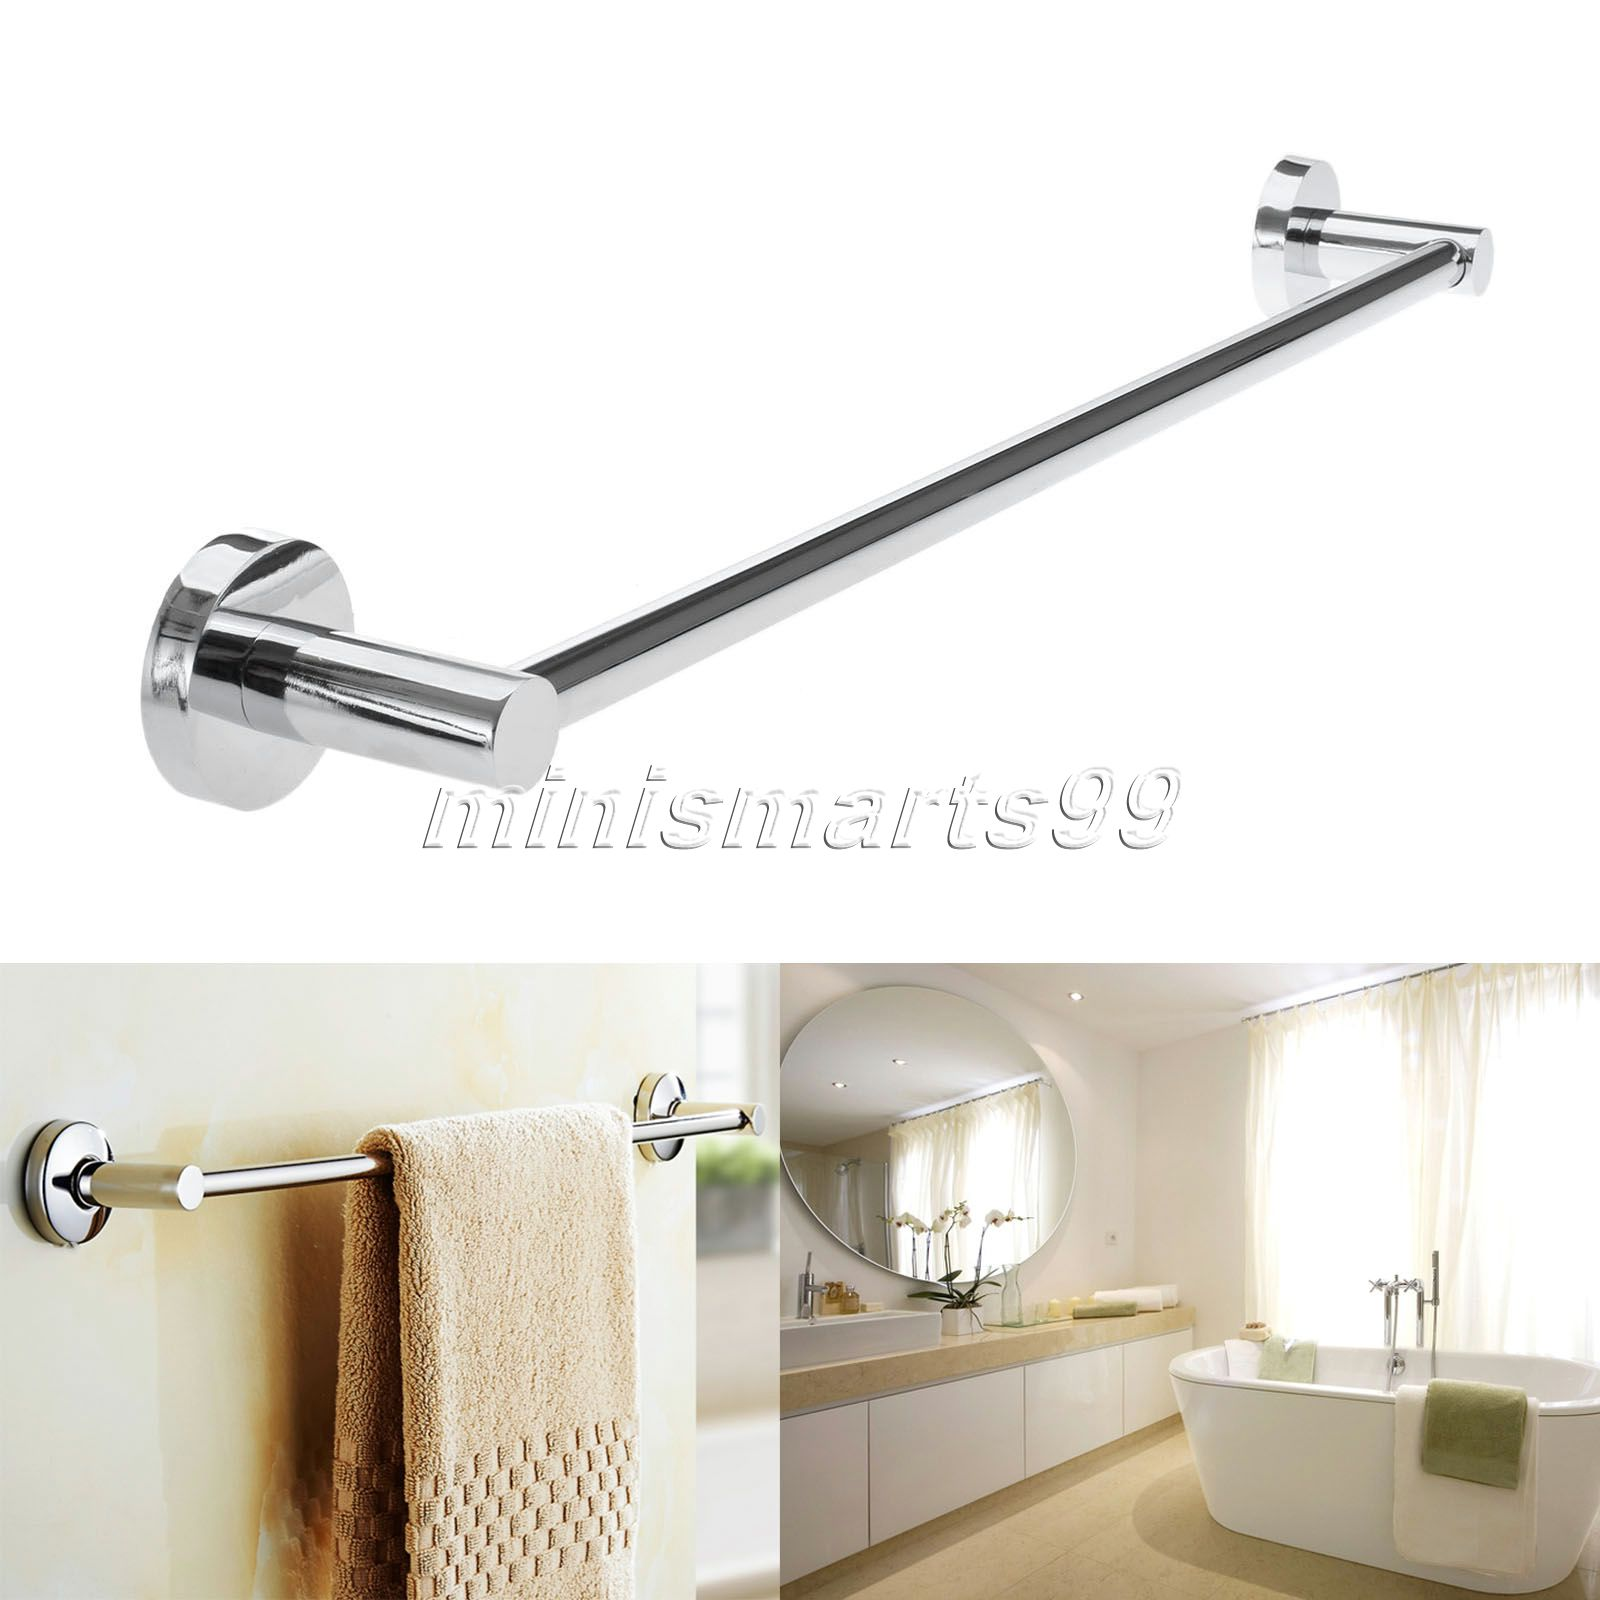 Wall mounted towel holders for bathrooms - 60cm Steel Towel Rack Holder Wall Mounted Bathroom Towel Holders